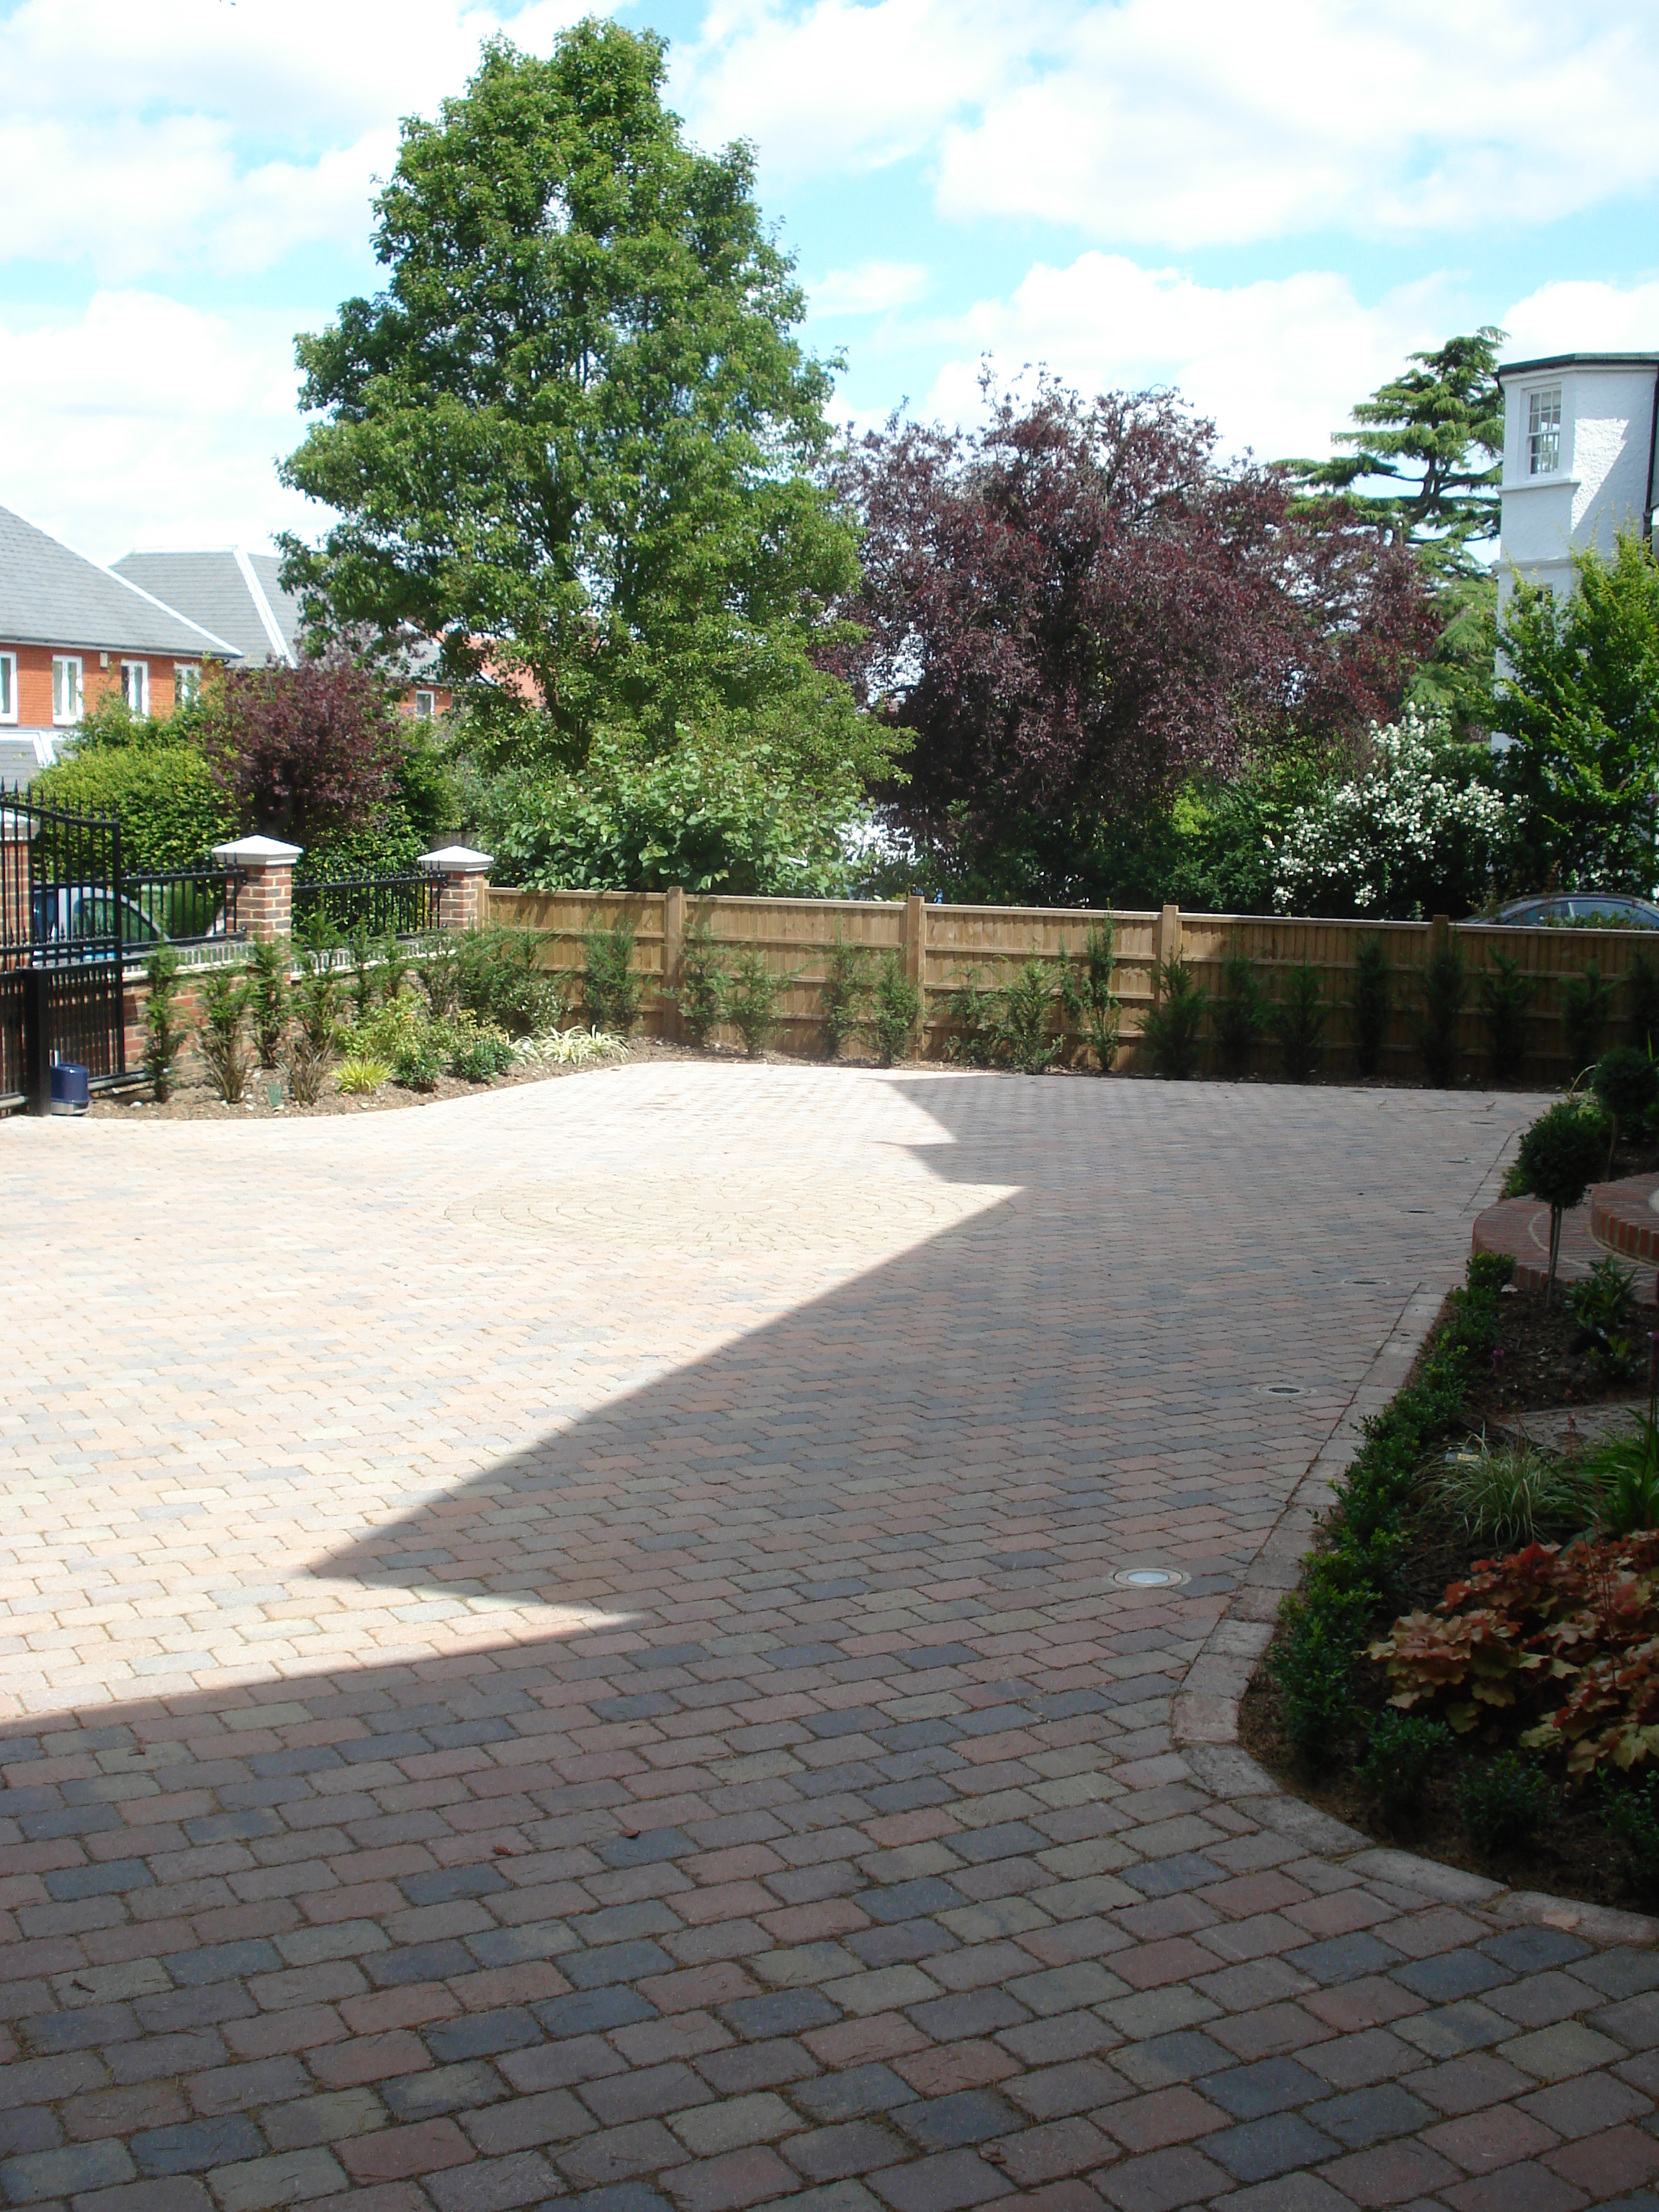 Front Garden - Tegula paving provides ample space for parking